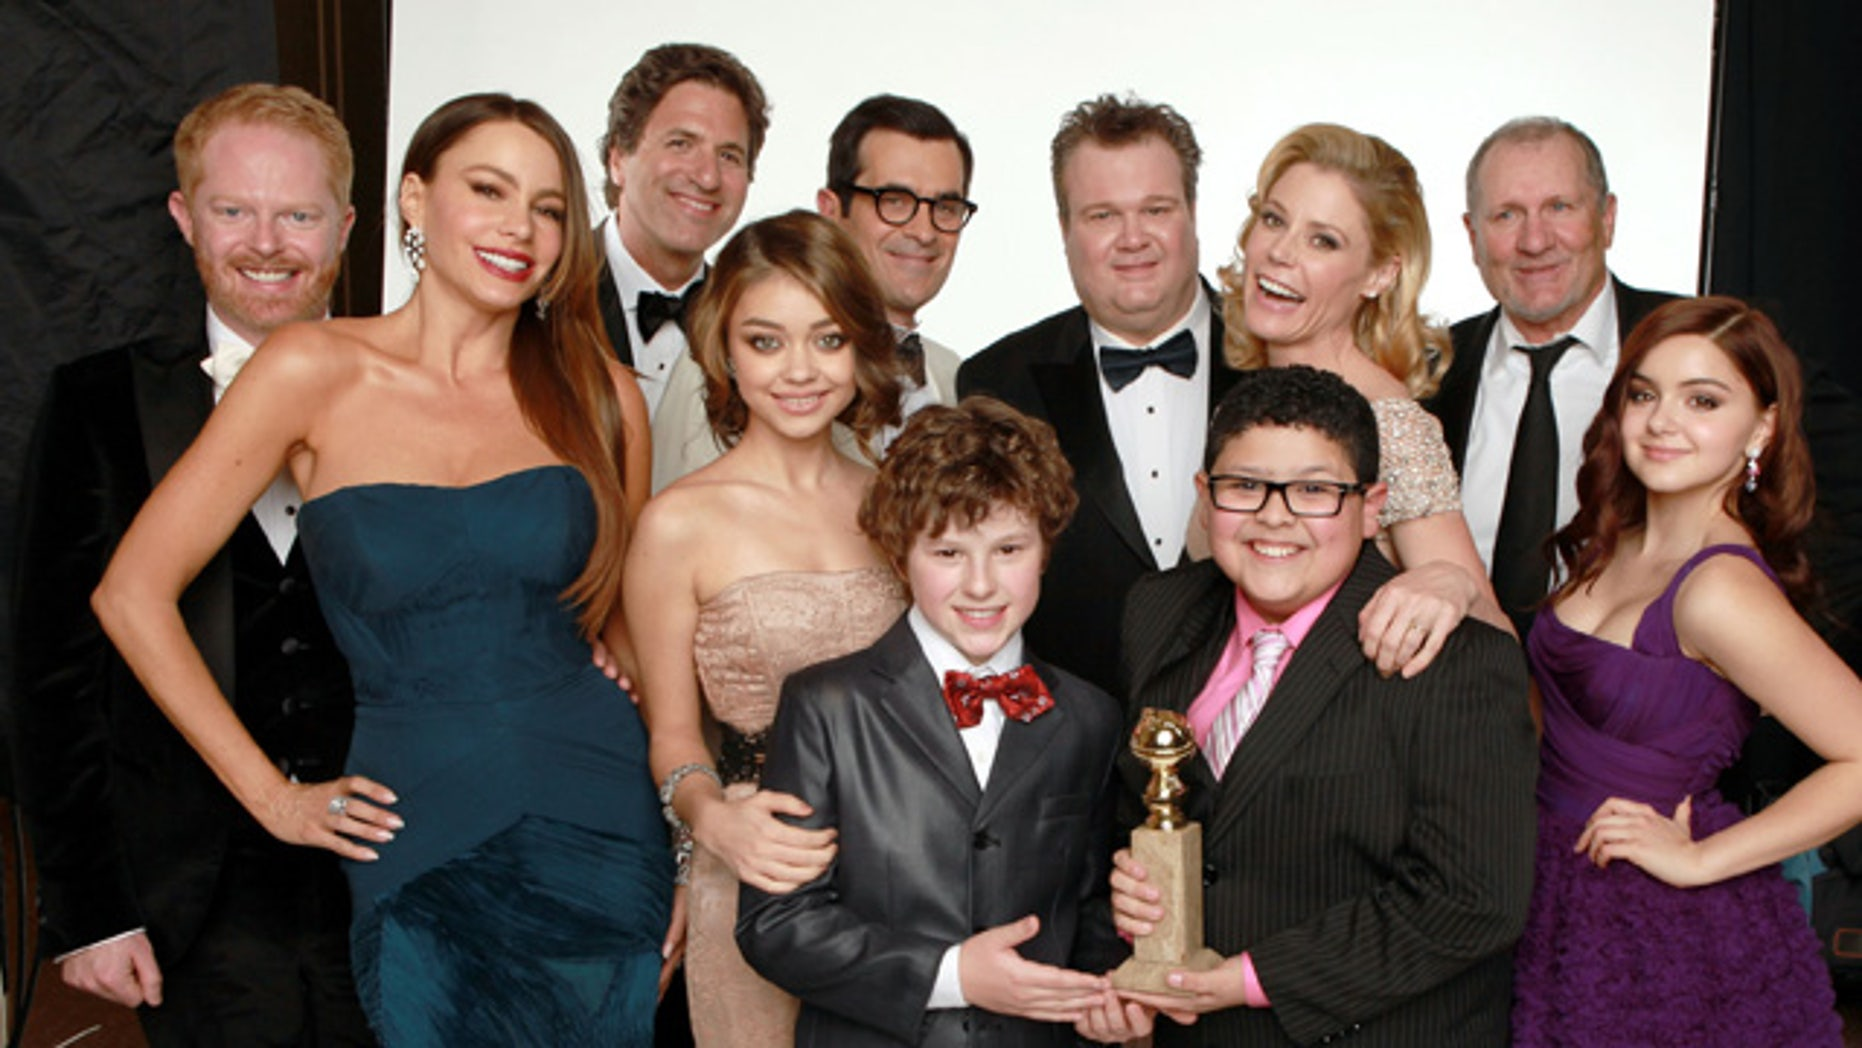 """BEVERLY HILLS, CA - JANUARY 15:  (L-R) Actors Jesse Tyler Ferguson, Sofia Vergara, creator/producer Steven Levitan, actors Sarah Hyland, Ty Burrell, Nolan Gould, Eric Stonestreet, Julie Bowen, Rico Rodriguez, Ed O'Neill and Ariel Winter, winners of the Best Television Series - Musical or Comedy award for """"Modern Family"""" pose for a portrait backstage at the 69th Annual Golden Globe Awards held at the Beverly Hilton Hotel on January 15, 2012 in Beverly Hills, California.  (Photo by Christopher Polk/Getty Images)"""